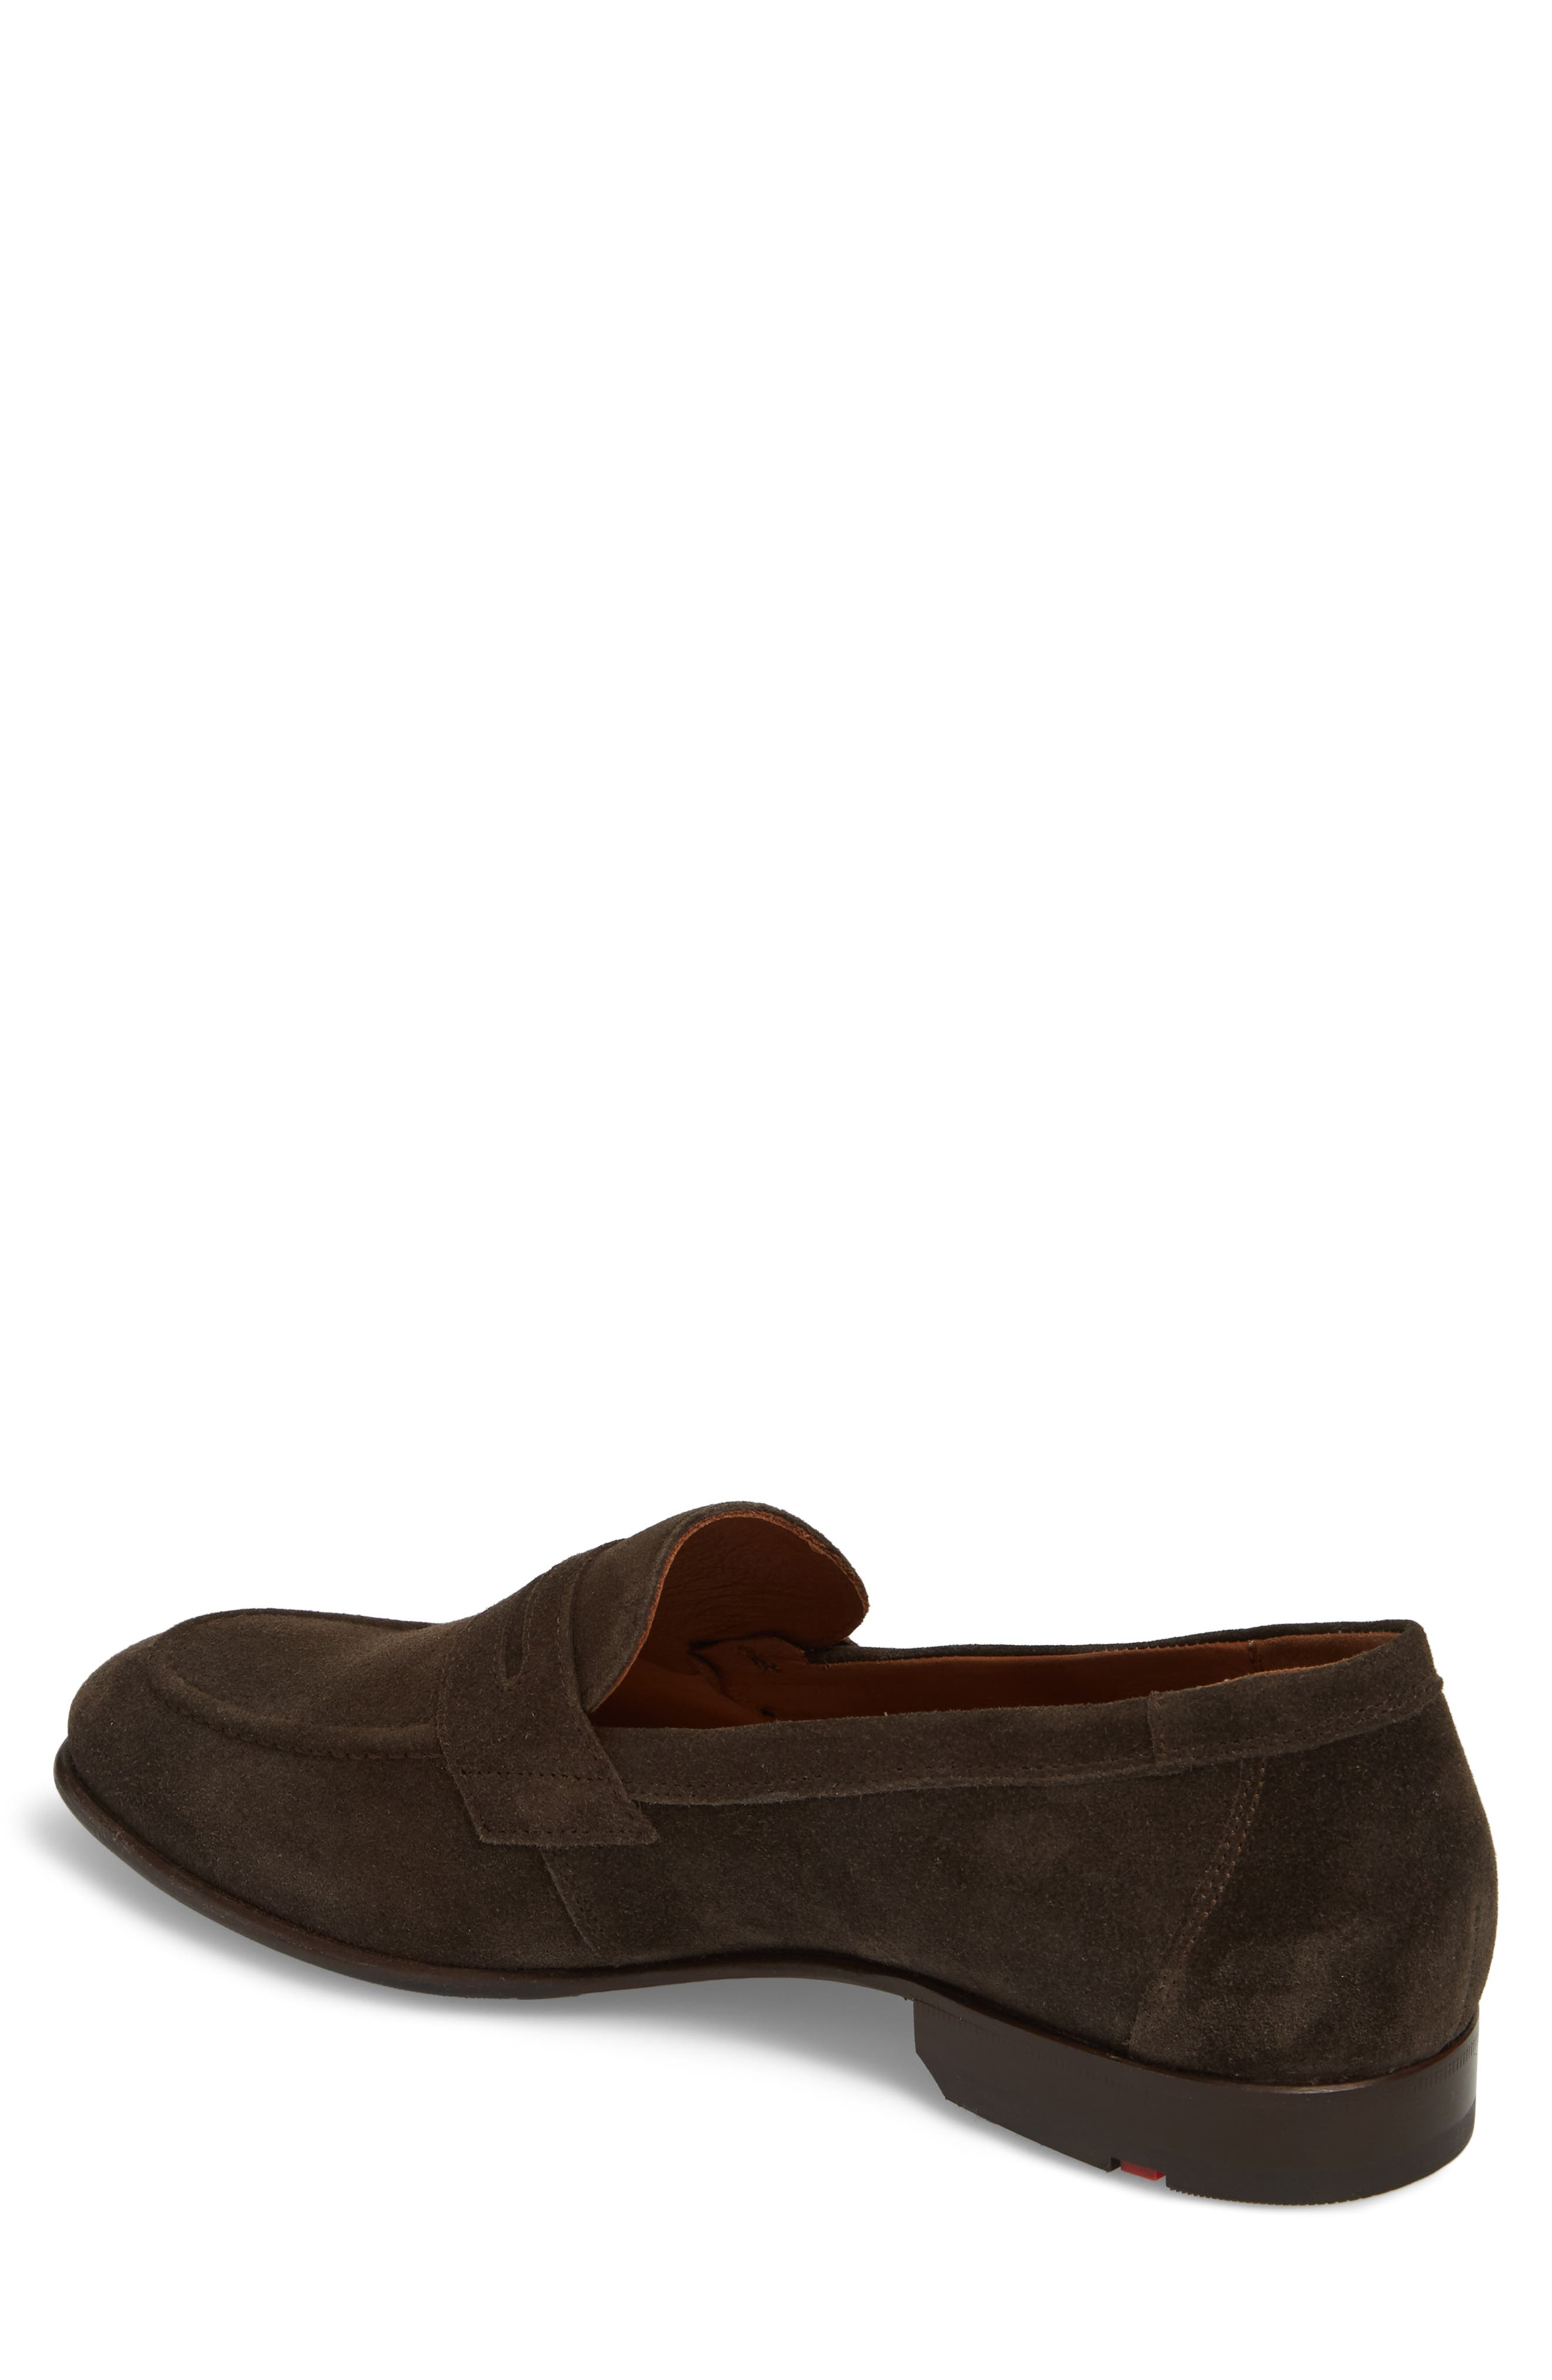 Paxton Penny Loafer,                             Alternate thumbnail 2, color,                             Brown Suede